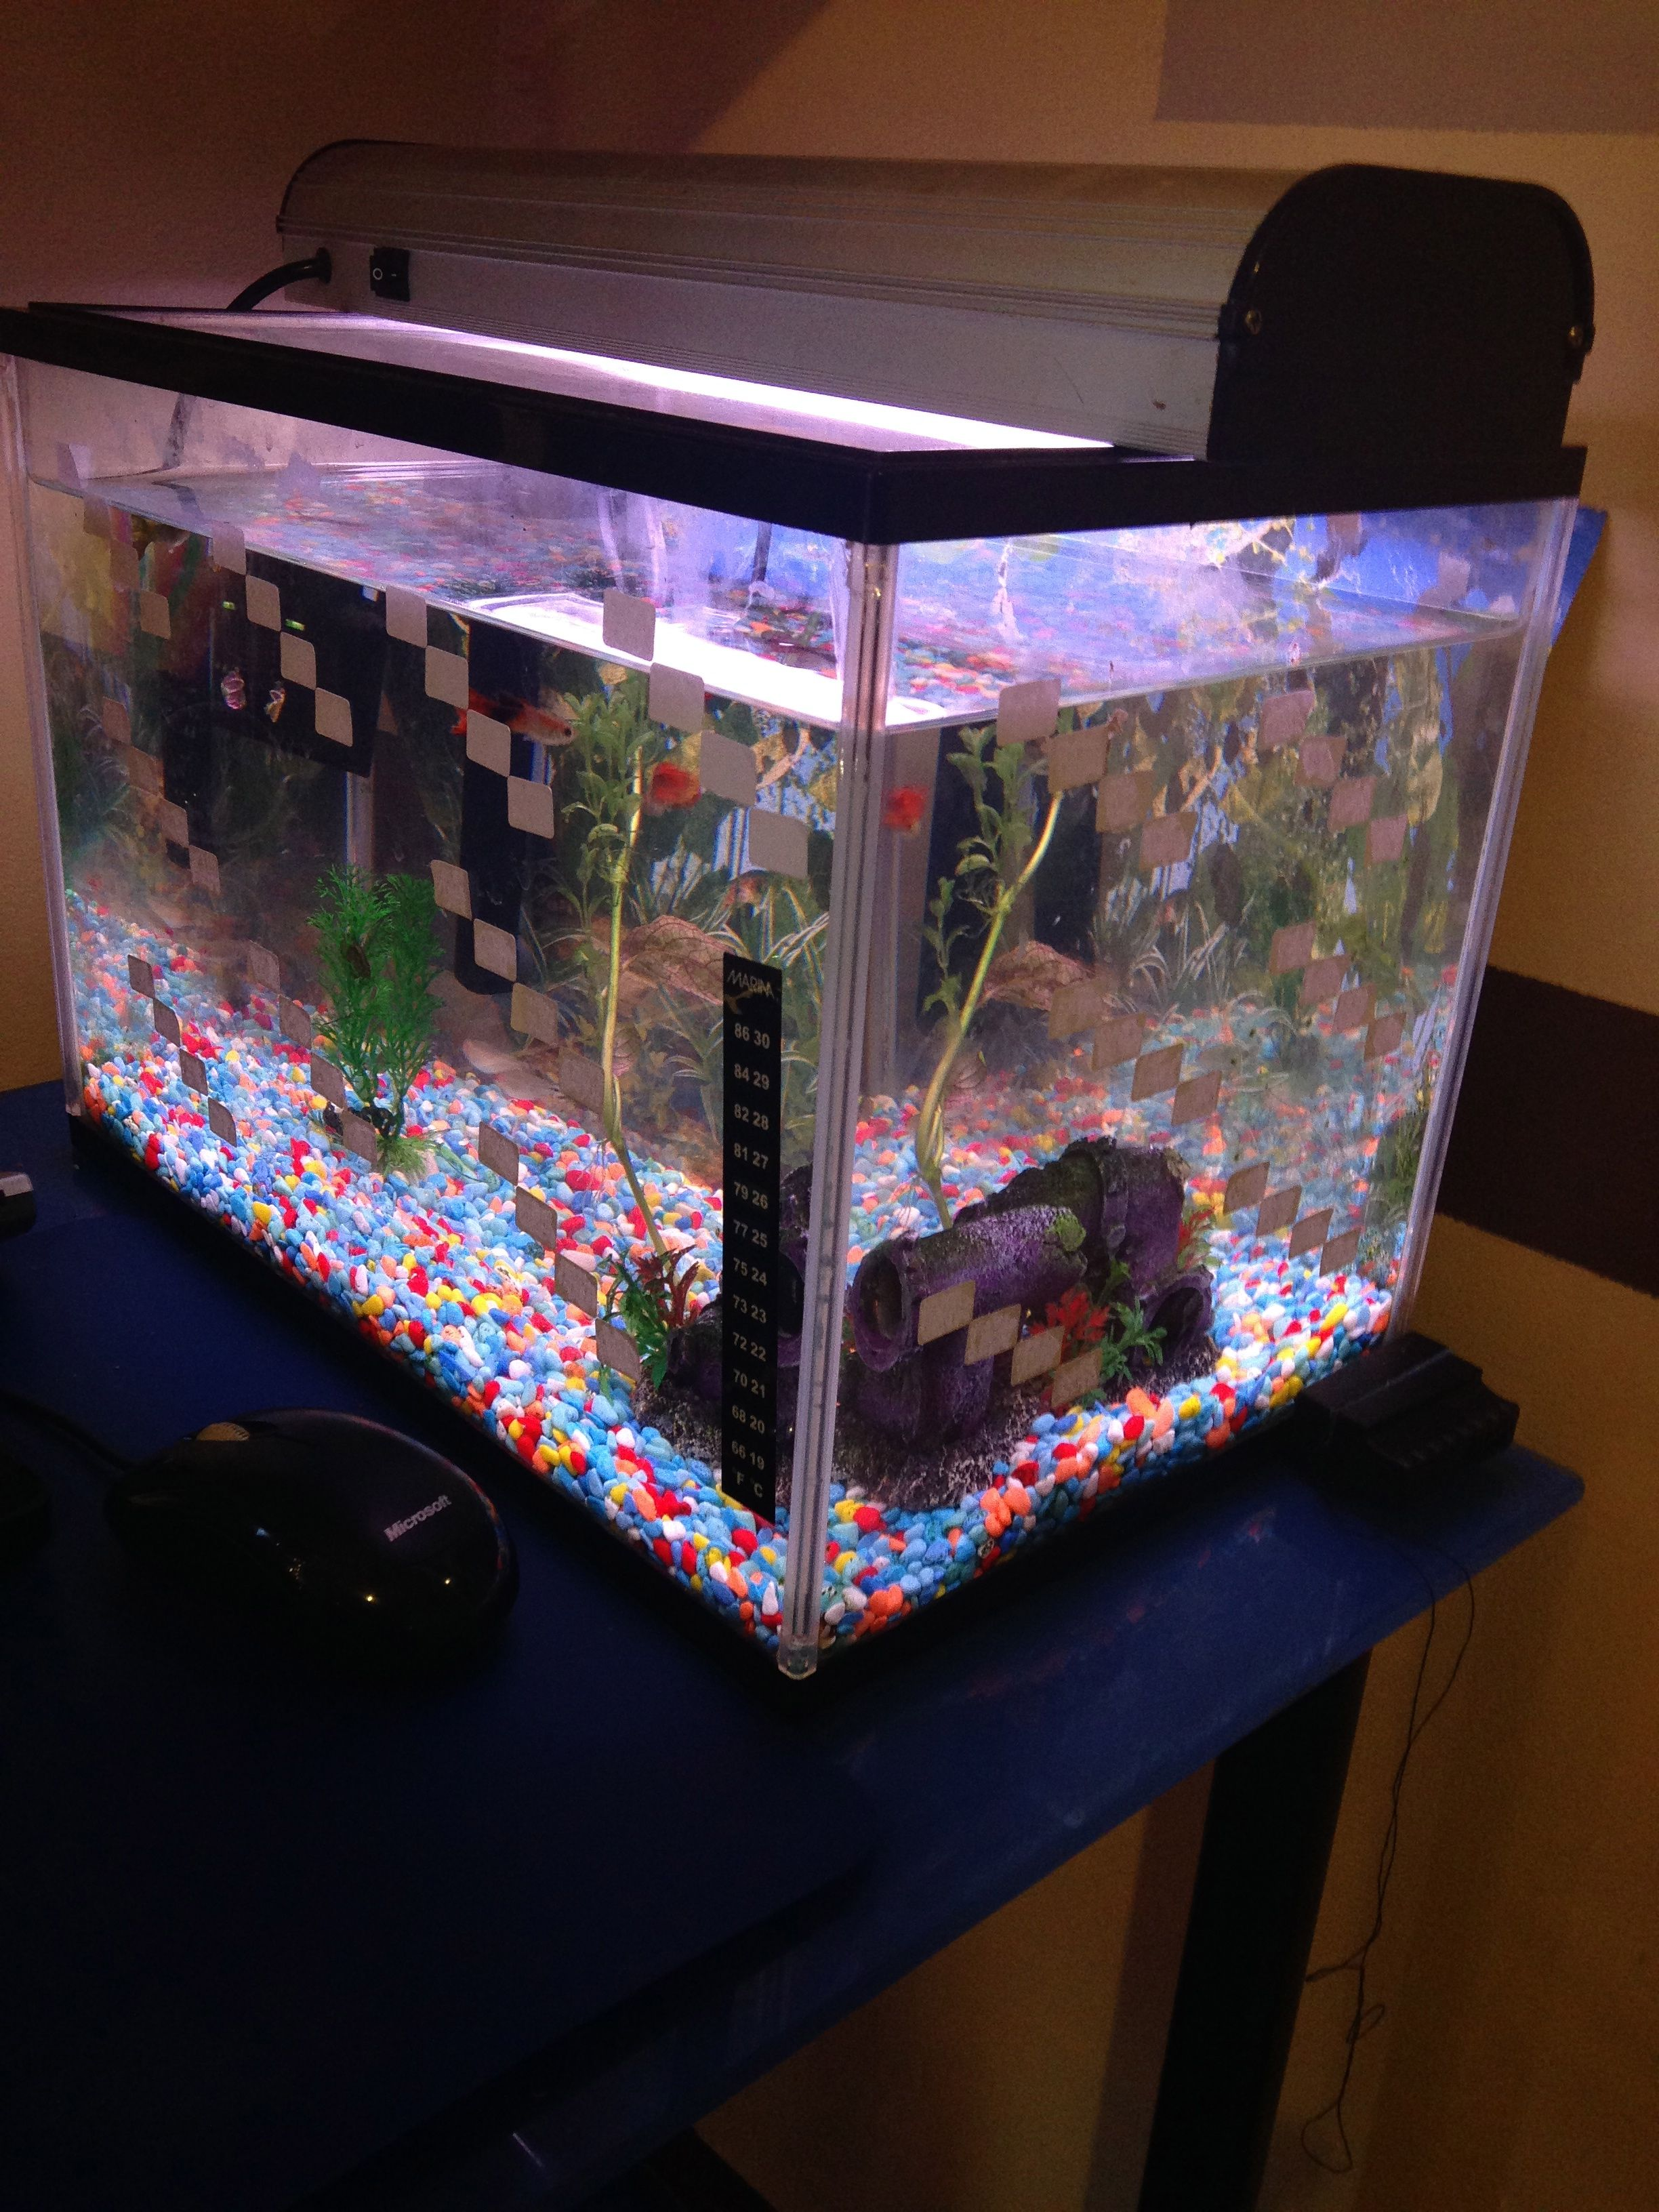 Using White Stickers To Make The Fish Tank Look Like Minecraft